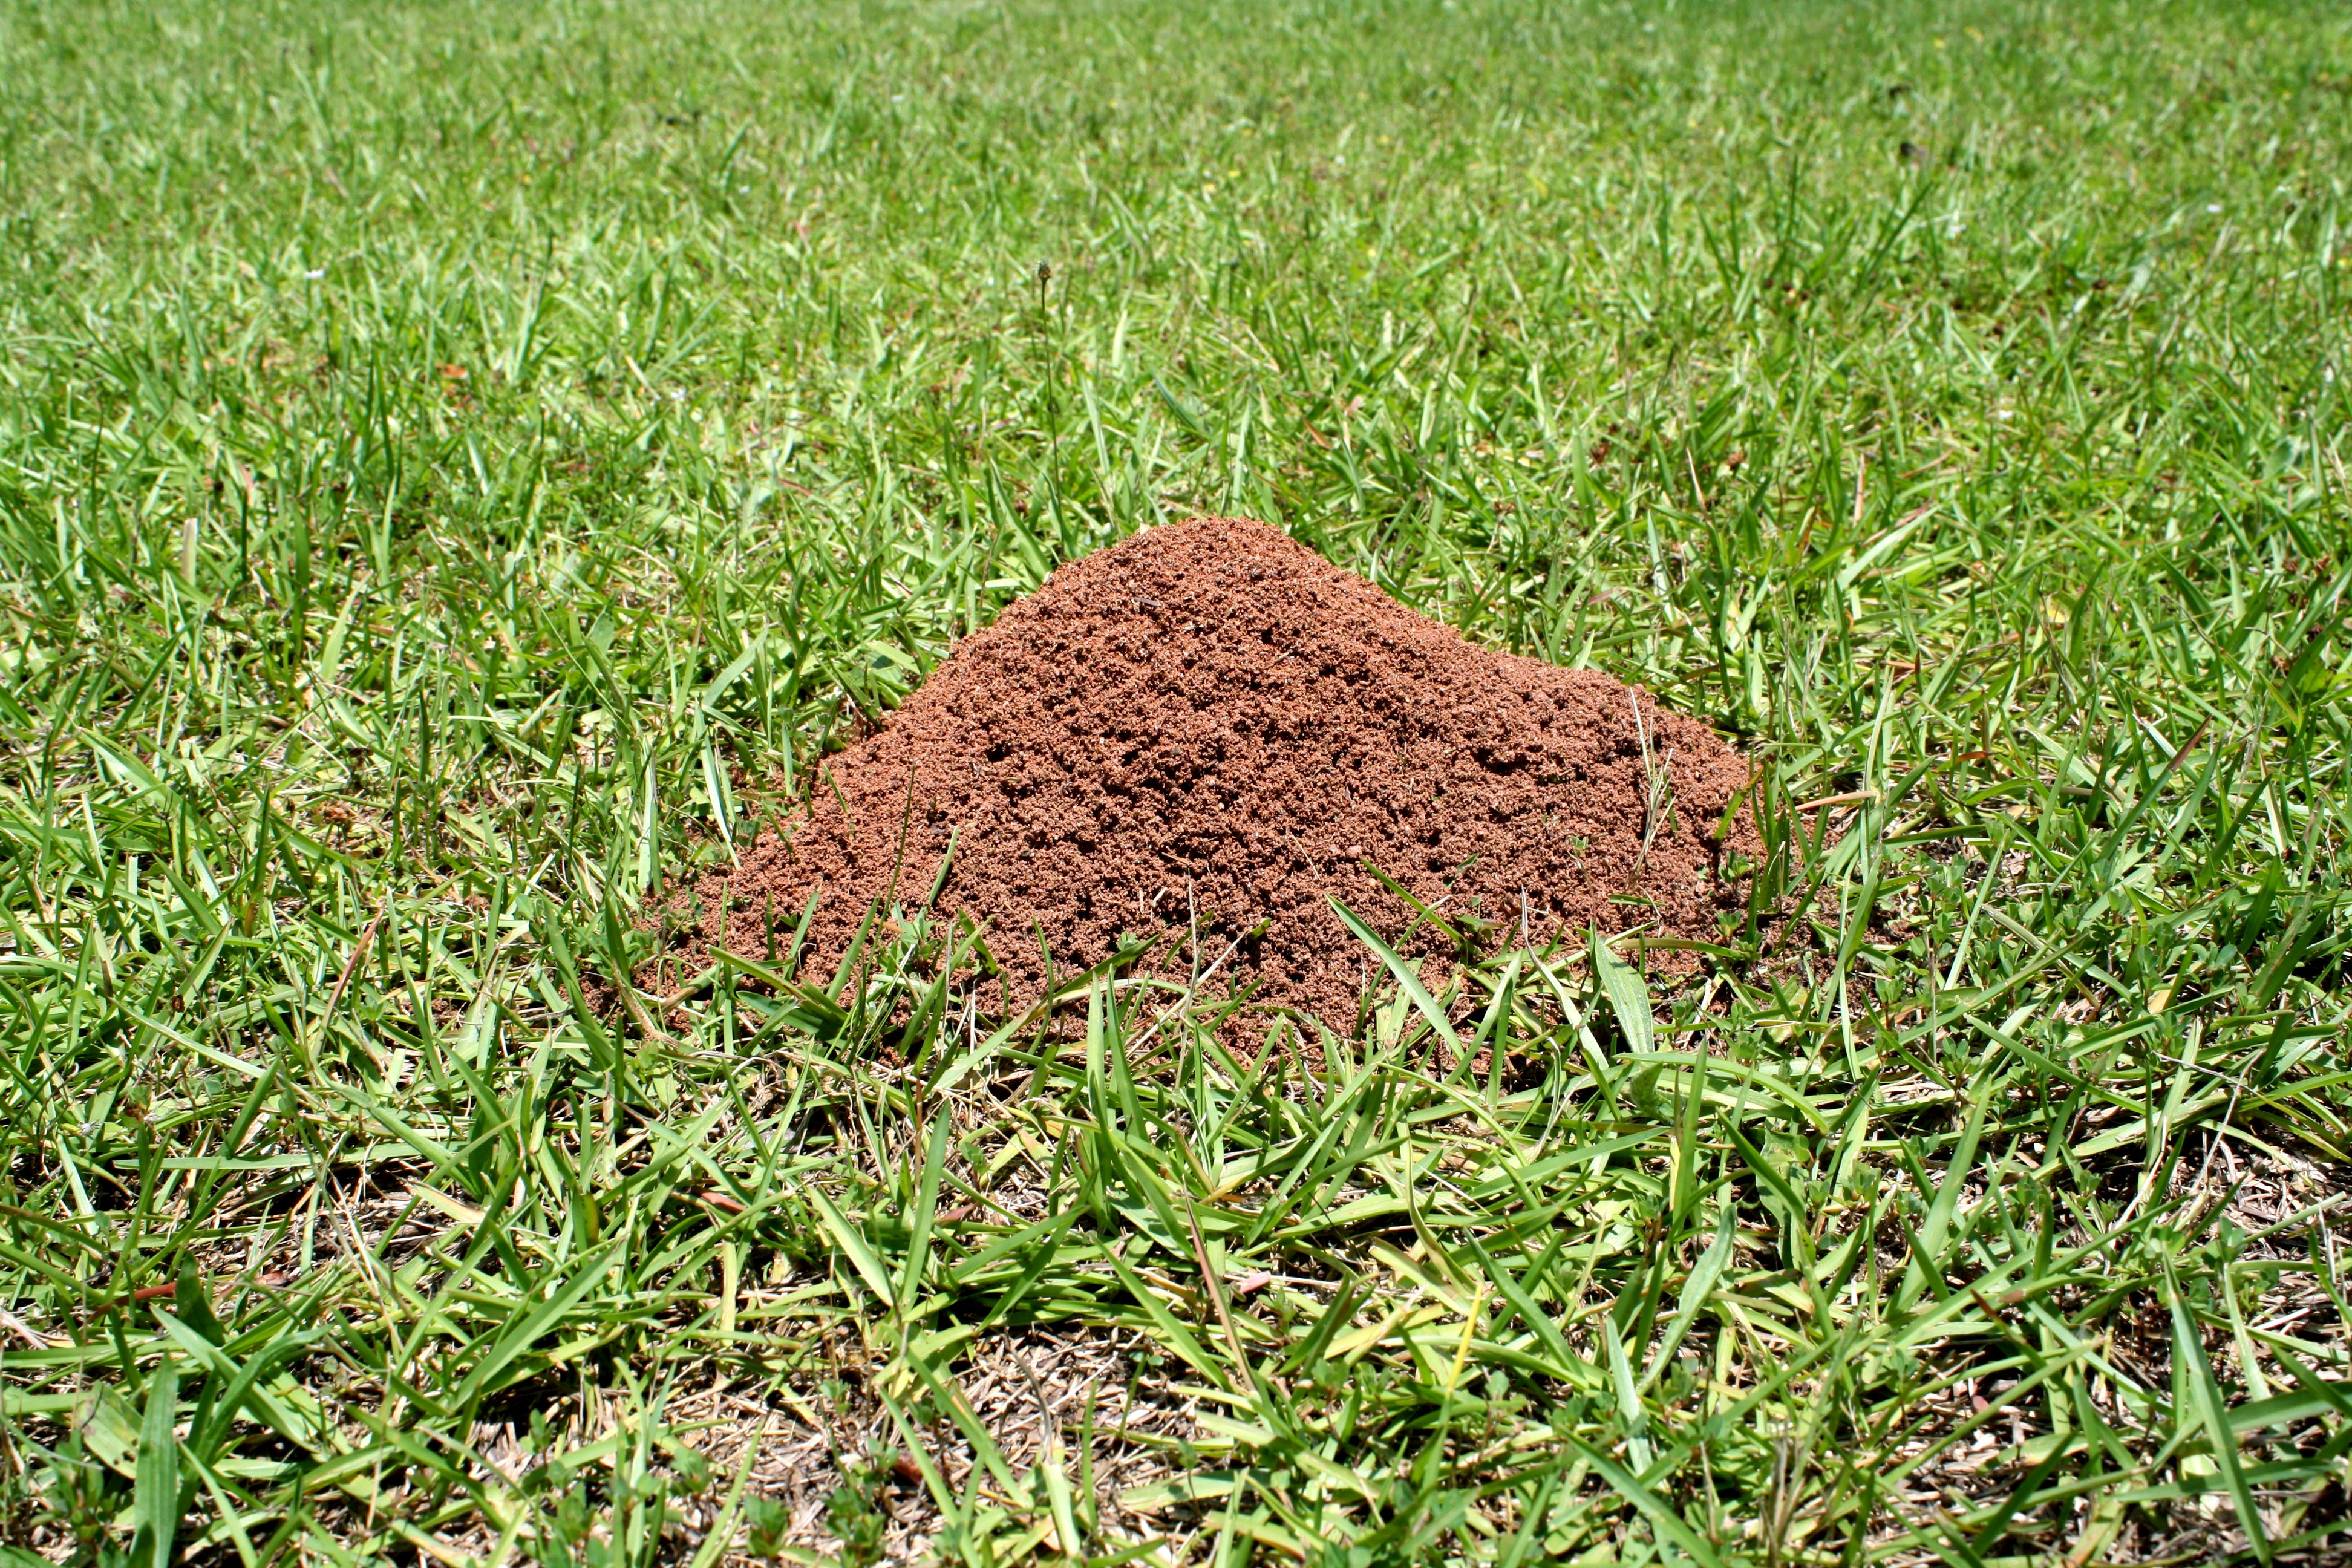 fire ant, insect, lawn control, lawn, yard, arkansas